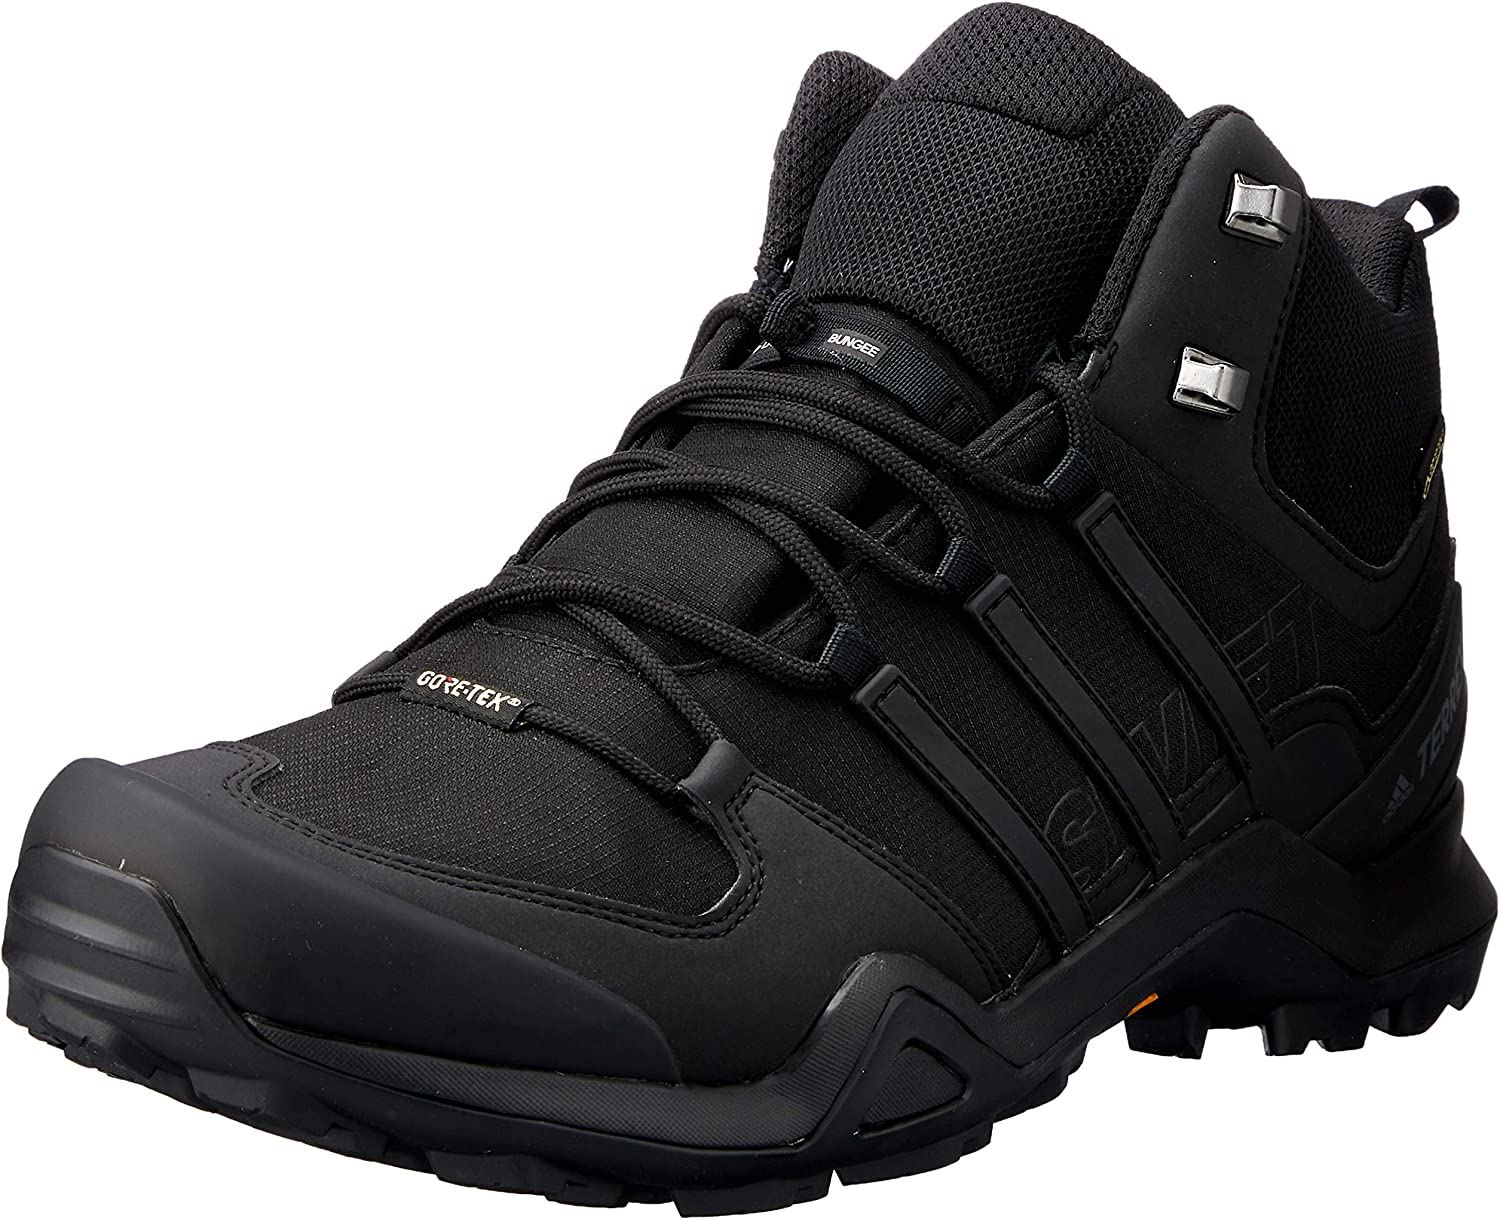 adidas Terrex Swift R2 Mid Gore-TEX Walking Boots - SS20